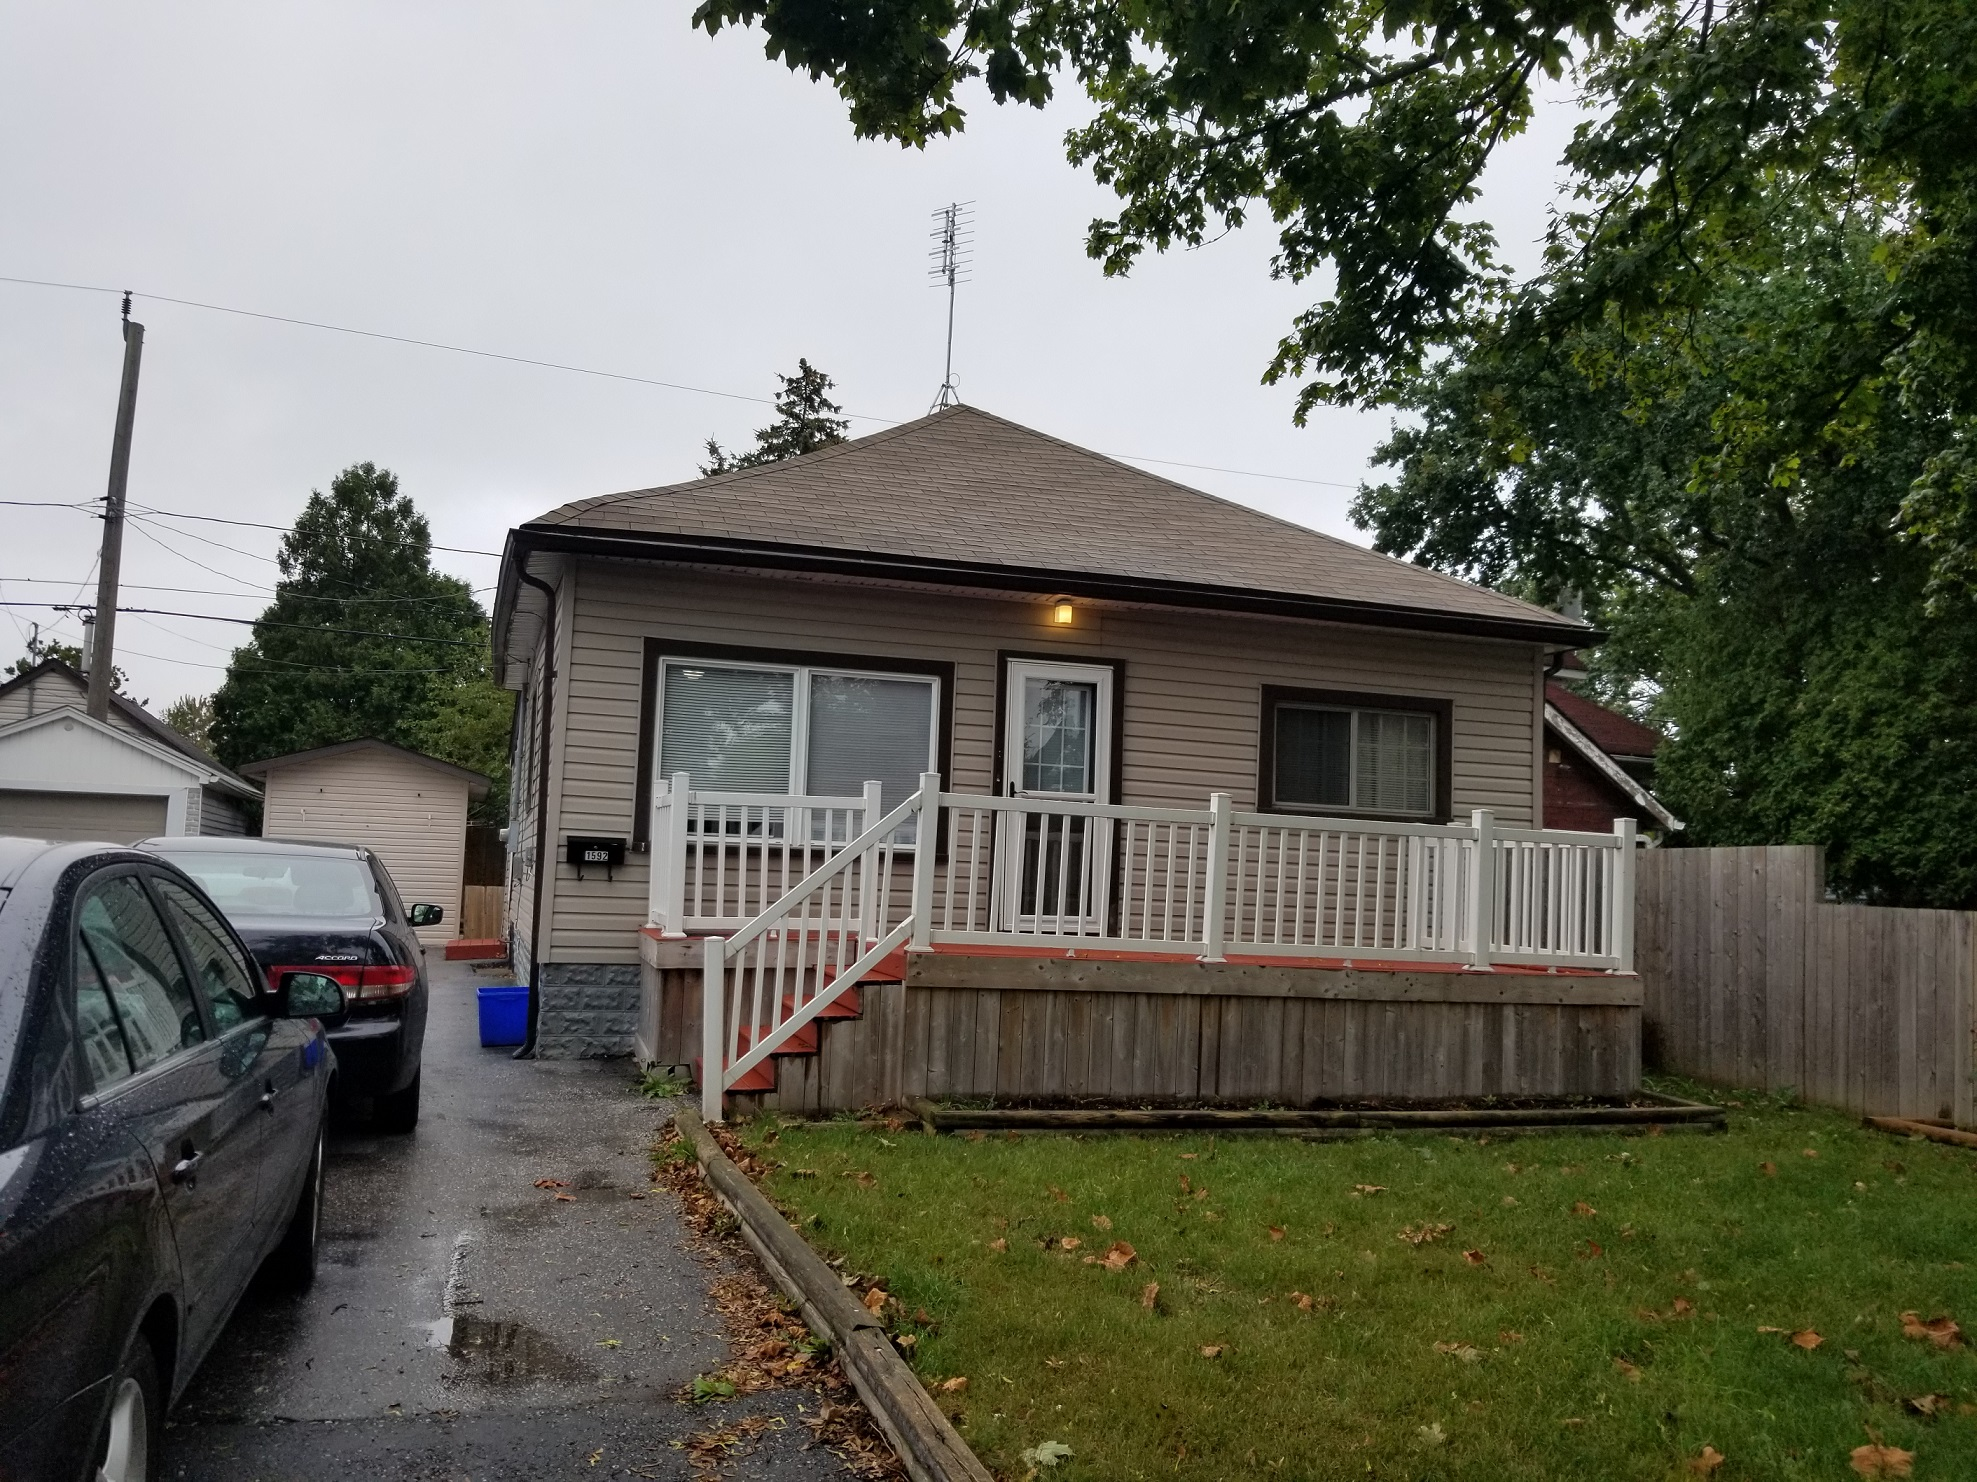 CHARMING 2 BEDROOM BUNGALOW IN CENTRAL WINDSOR